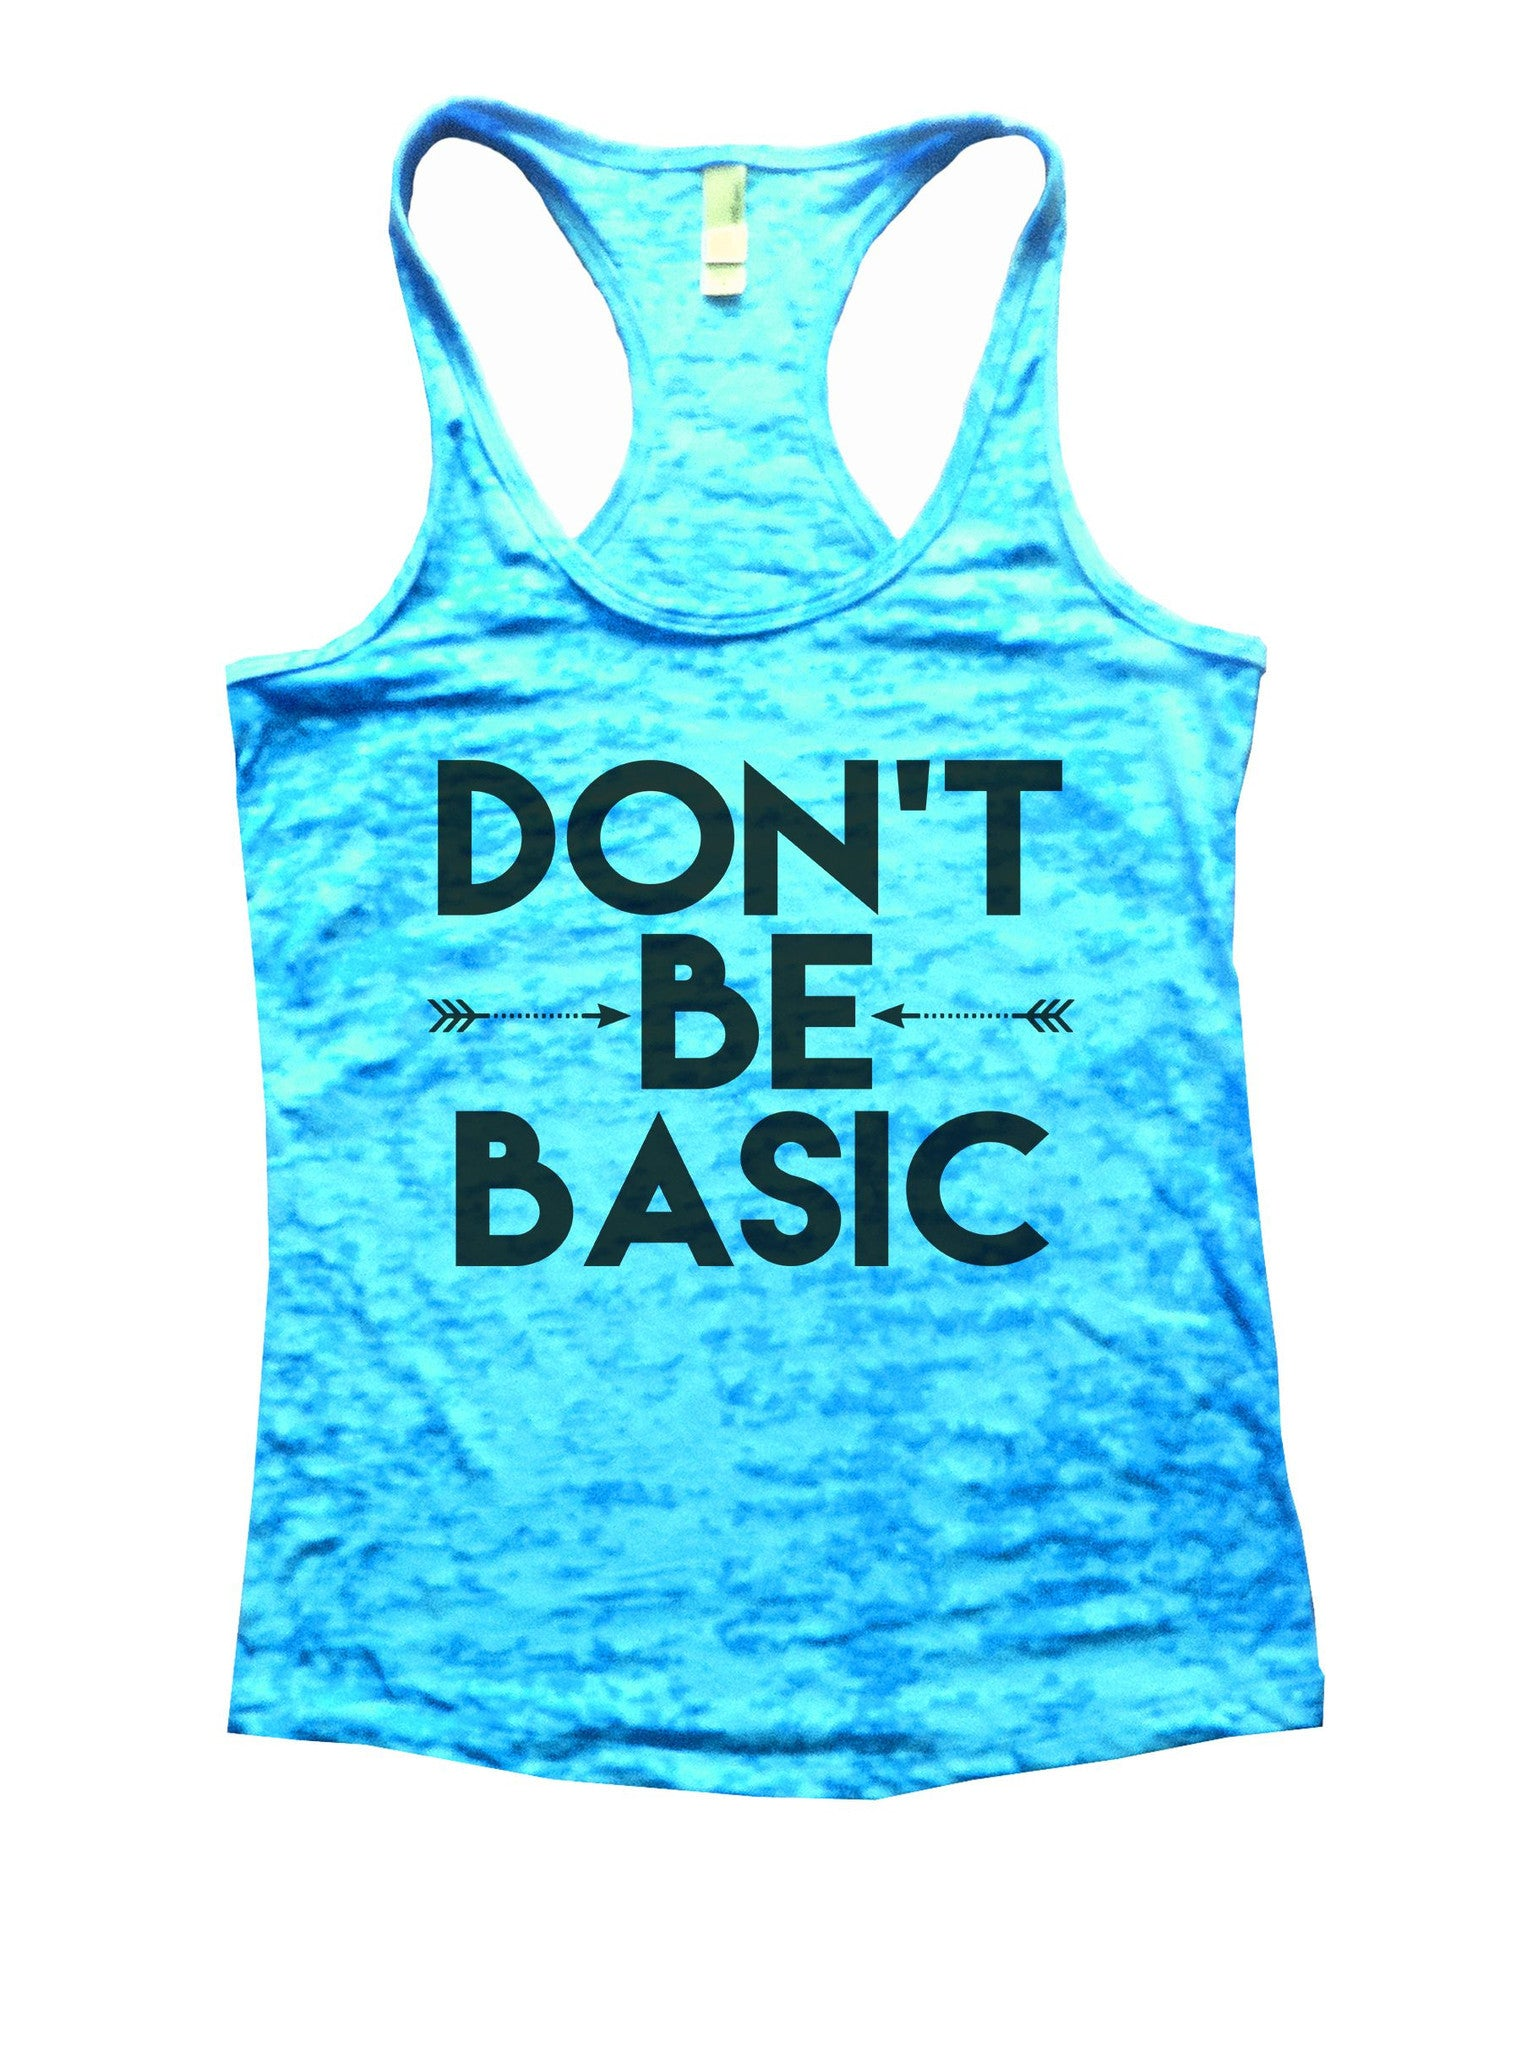 Don't Be Basic Burnout Tank Top By BurnoutTankTops.com - 920 - Funny Shirts Tank Tops Burnouts and Triblends  - 4